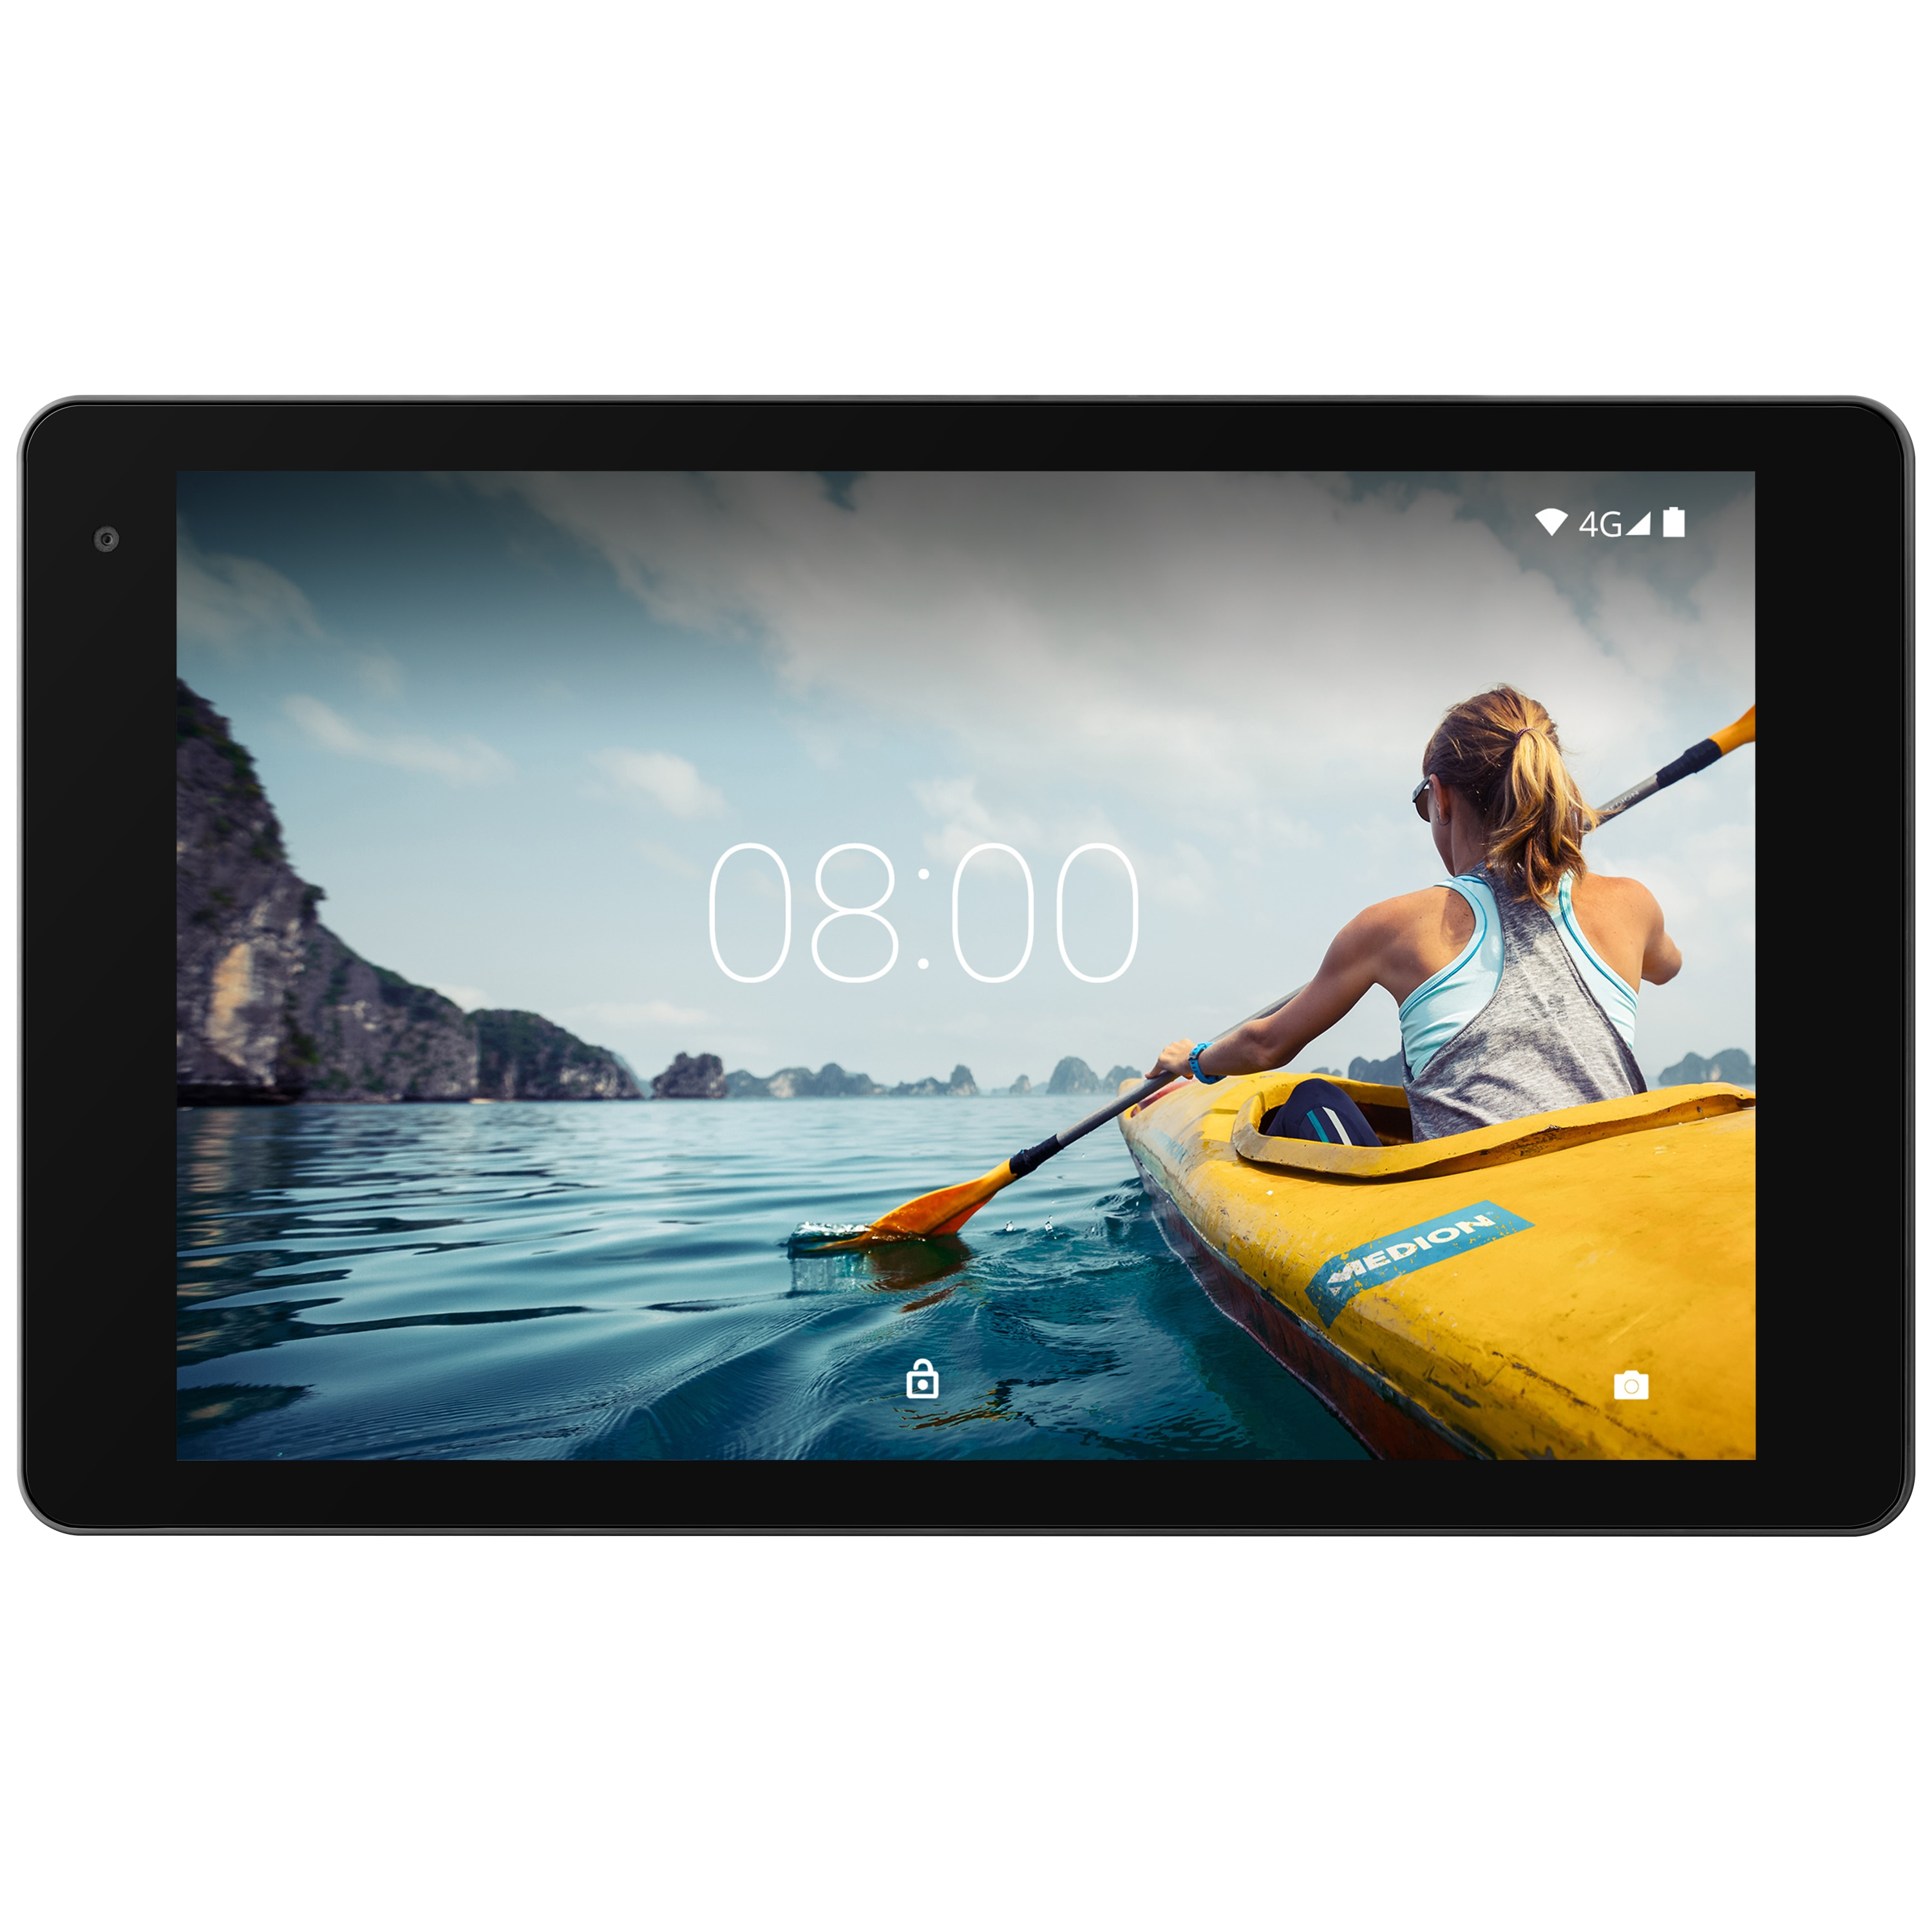 """MEDION® LIFETAB® P10612 Tablet, 25,5 cm (10,1"""") FHD Display, Android™ 8.1, 32 GB Speicher, Octa-Core-Prozessor, Quick Charge 3.0, LTE Cat 4  (B-Ware)"""